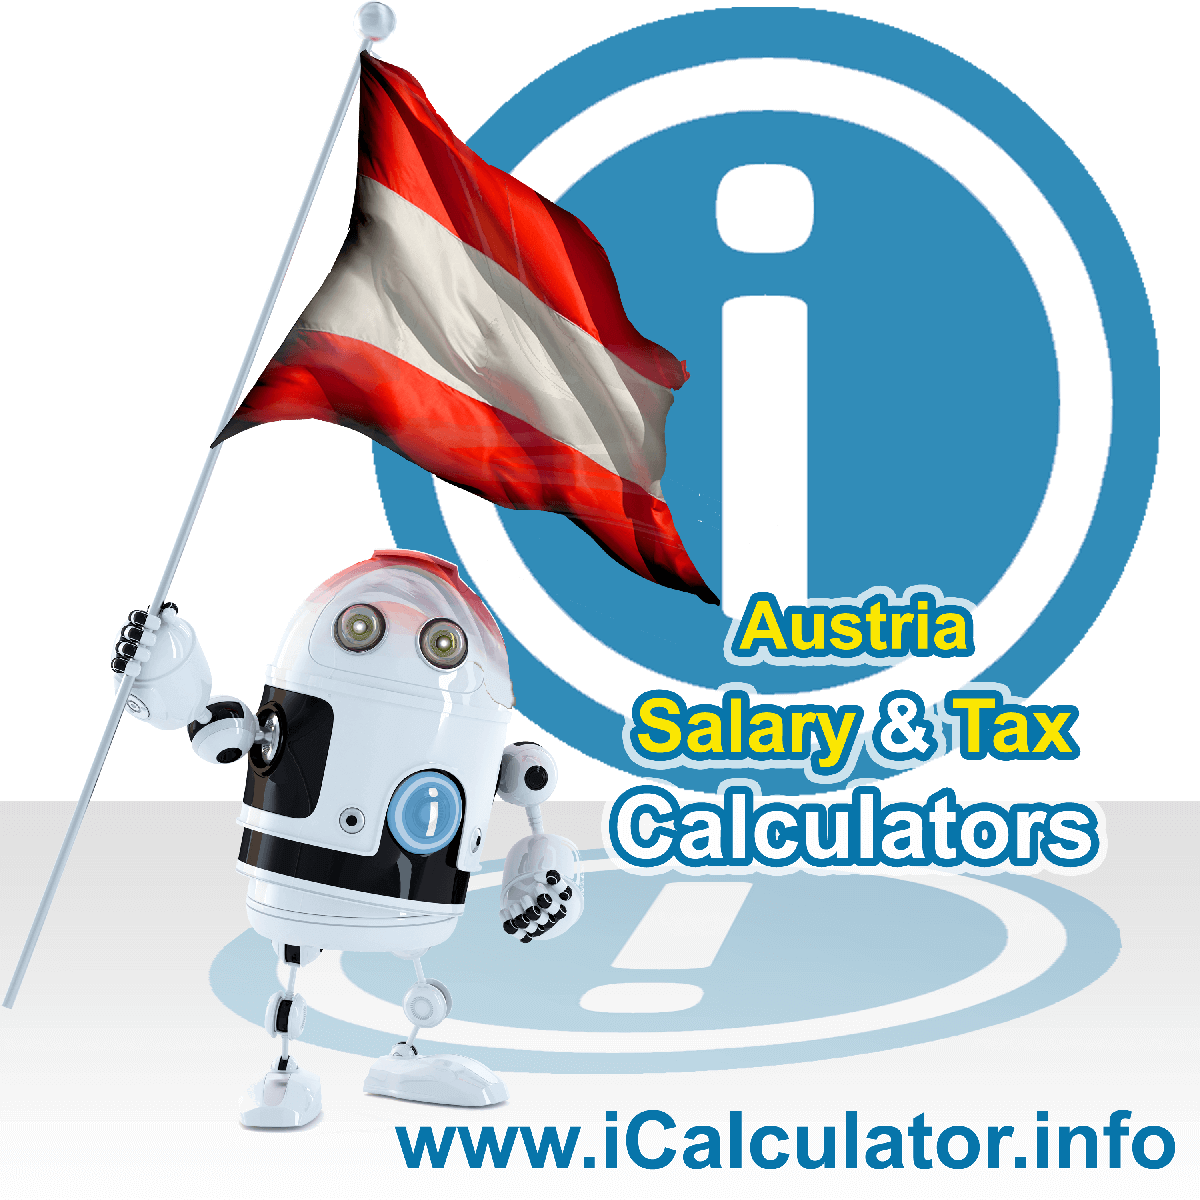 Austria Salary Calculator. This image shows the Austriaese flag and information relating to the tax formula for the Austria Tax Calculator